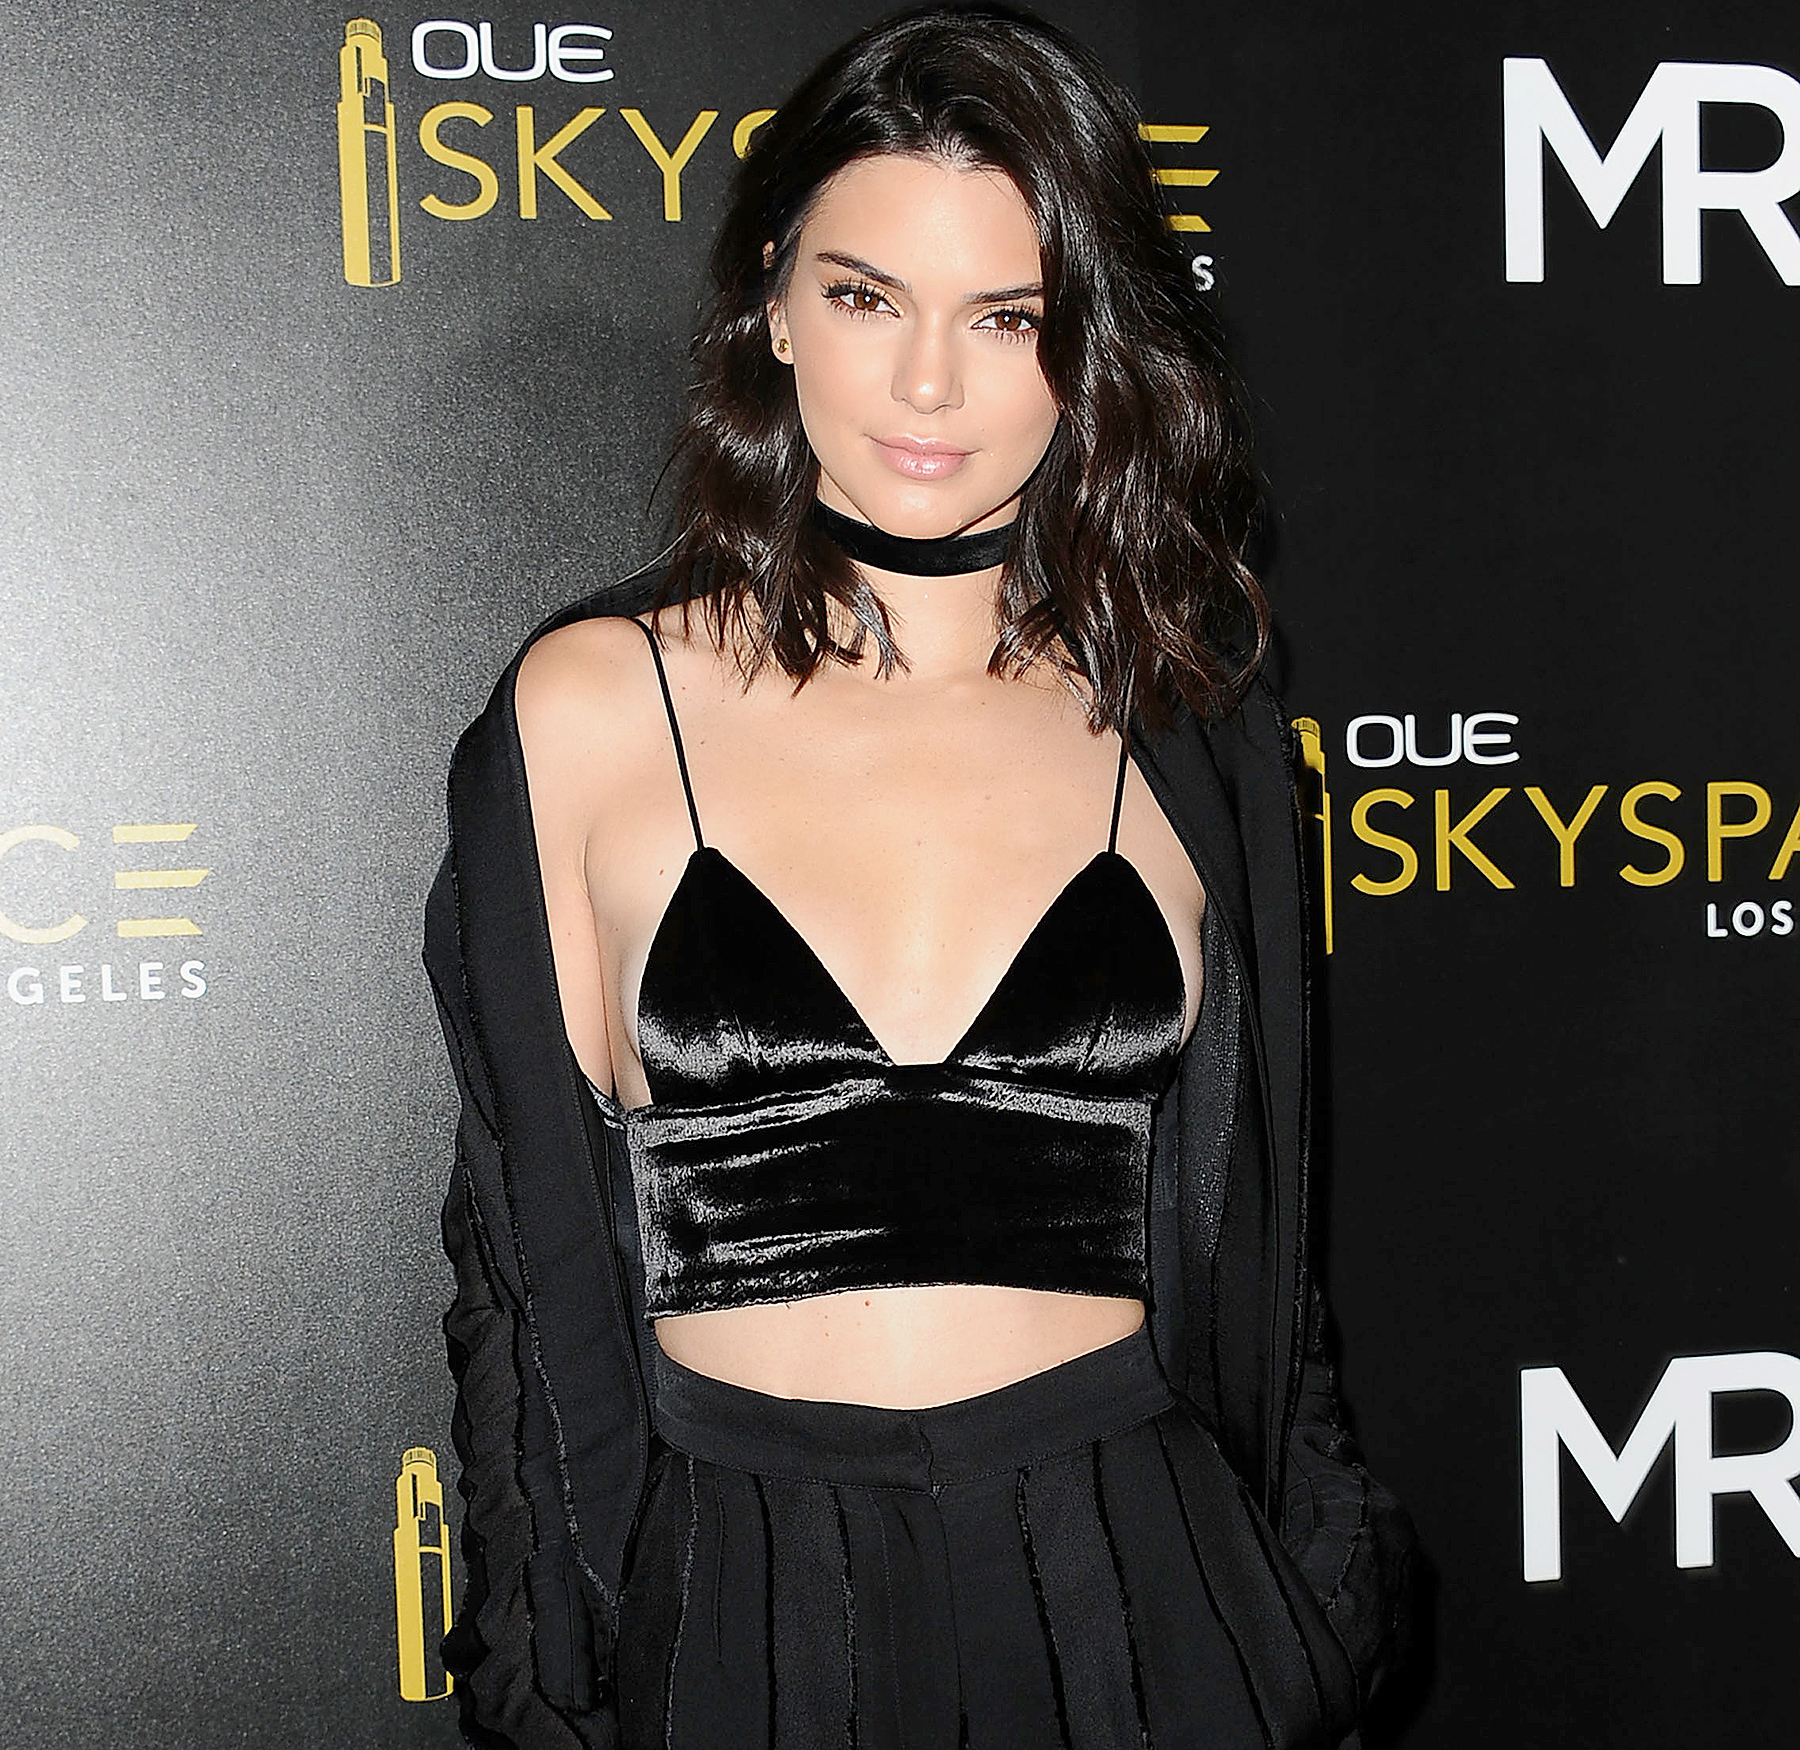 Kendall Jenner attends the launch of OUE Skyspace LA at U.S. Bank Tower on July 14, 2016.